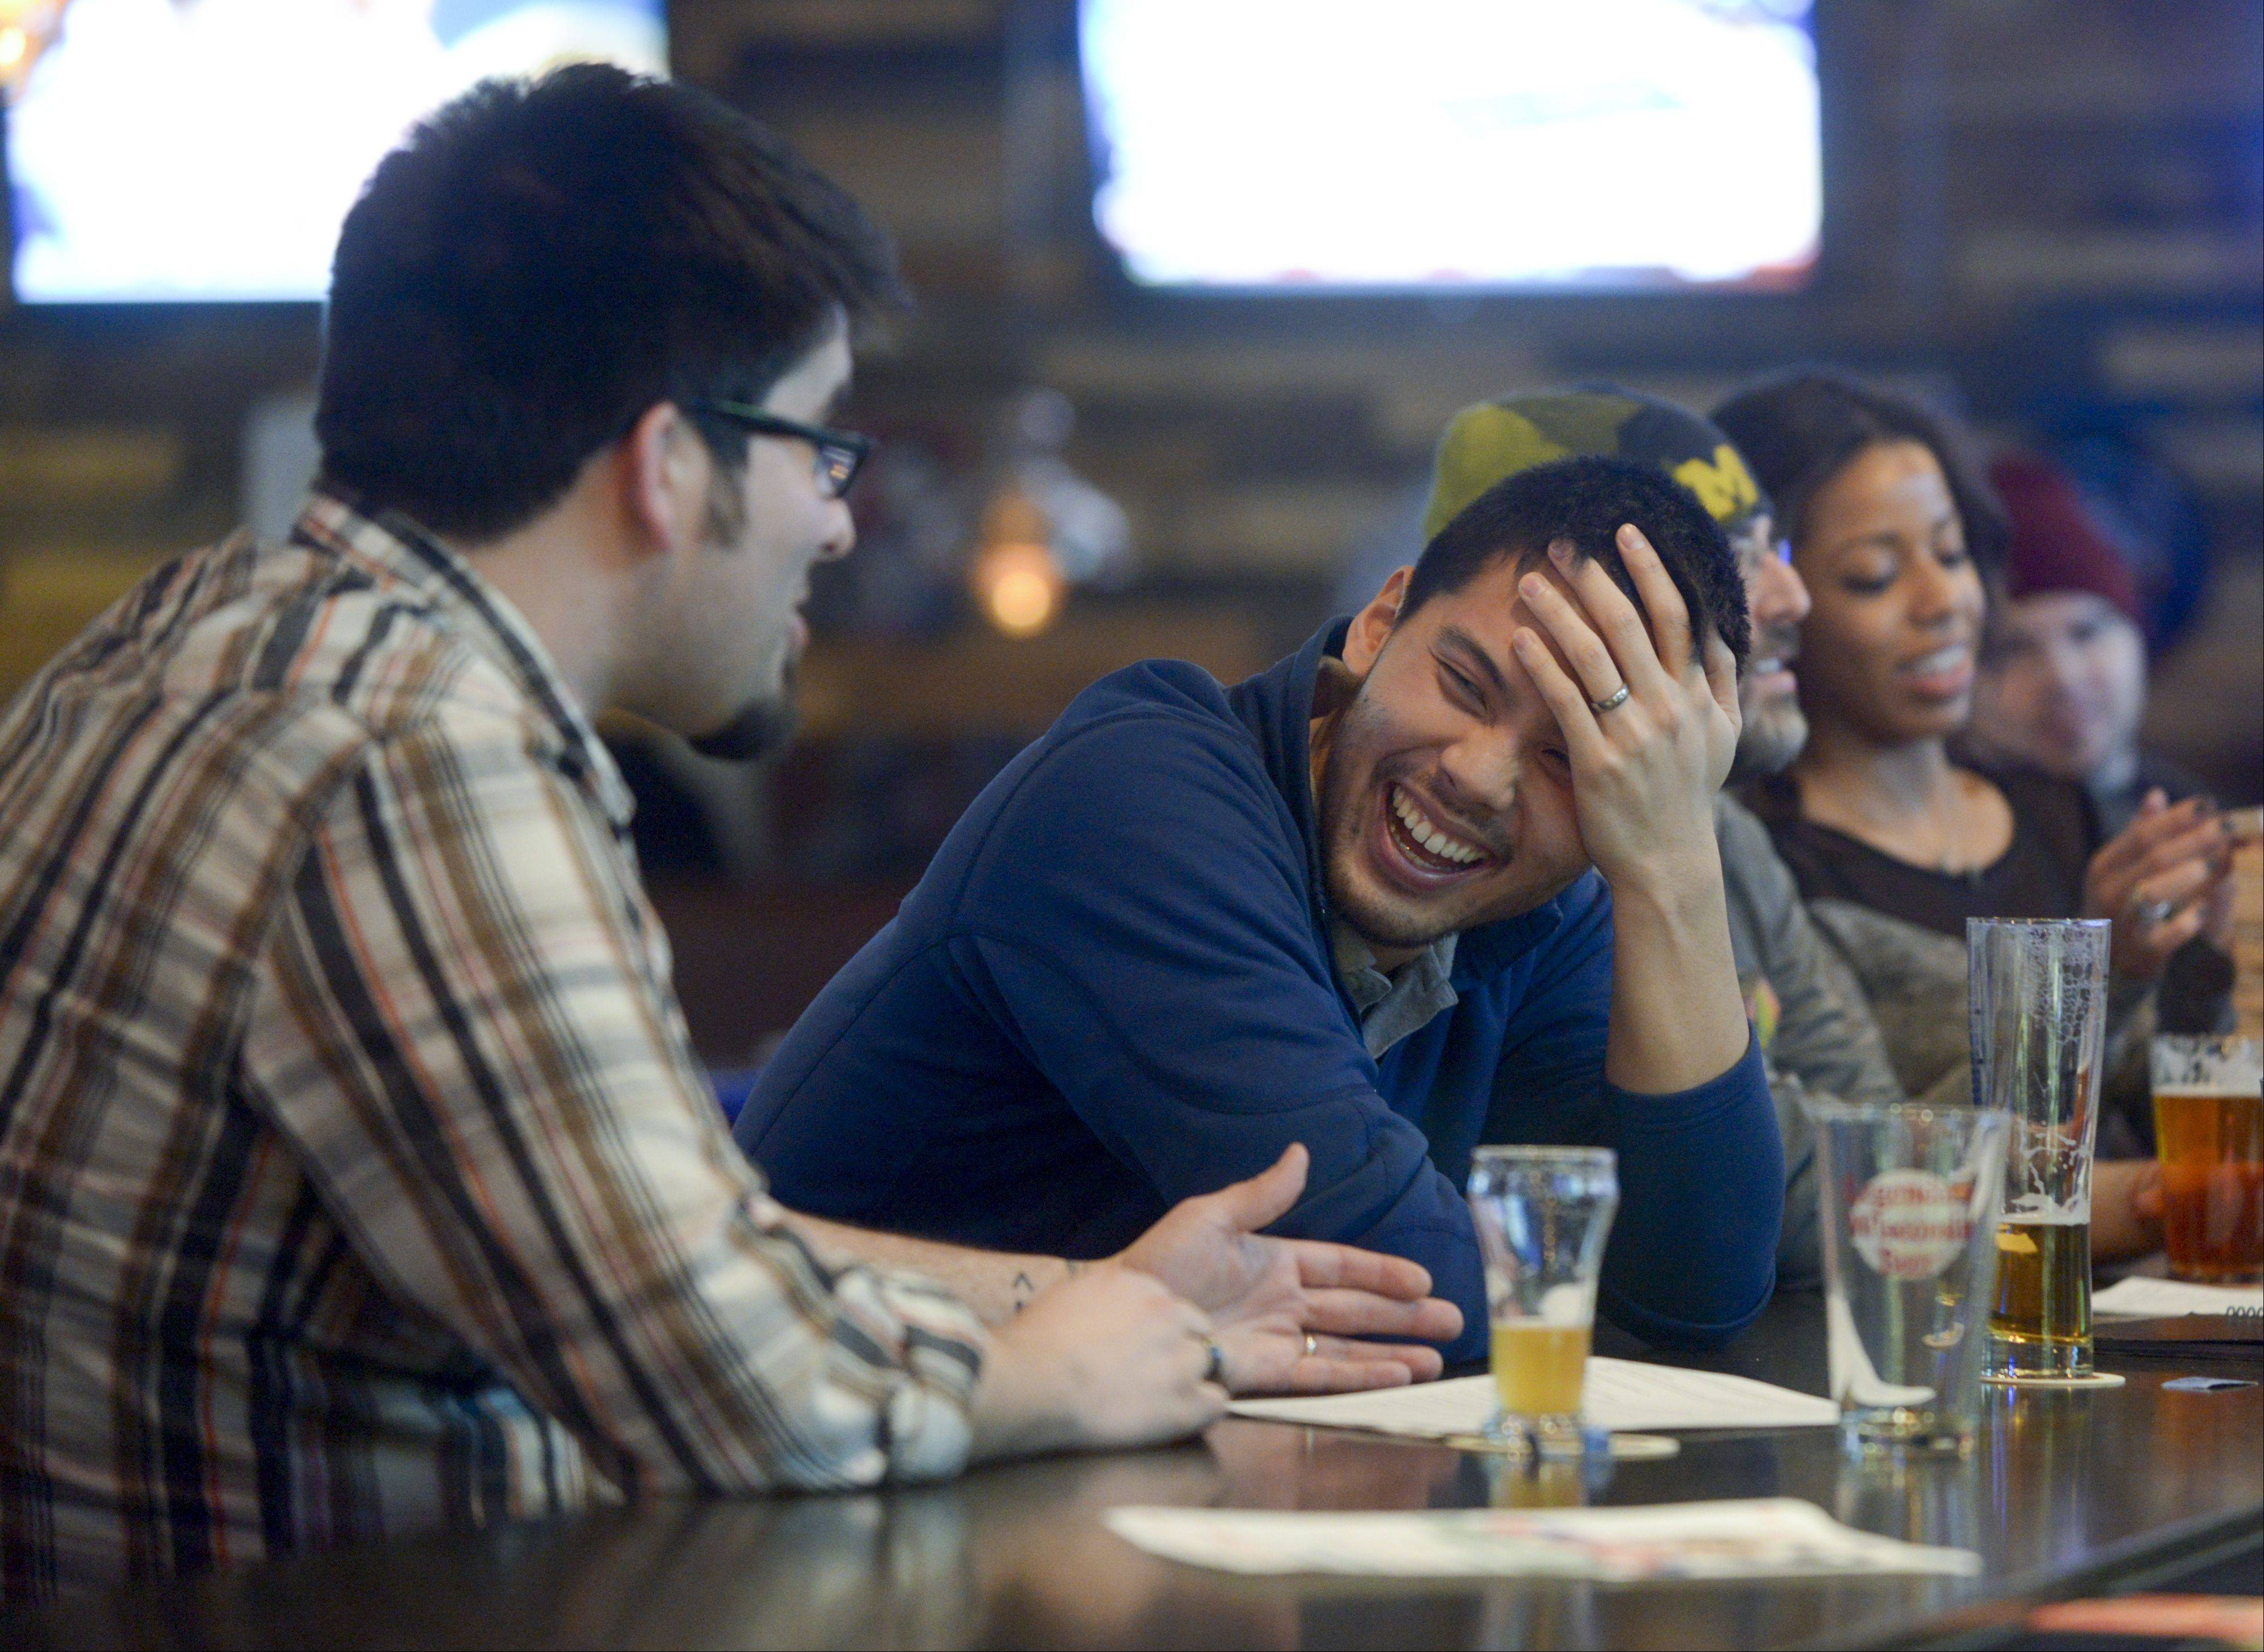 Josh Riley of Lombard and Derek Chan of Oak Brook enjoy a few laughs at Lombard's Beer House.